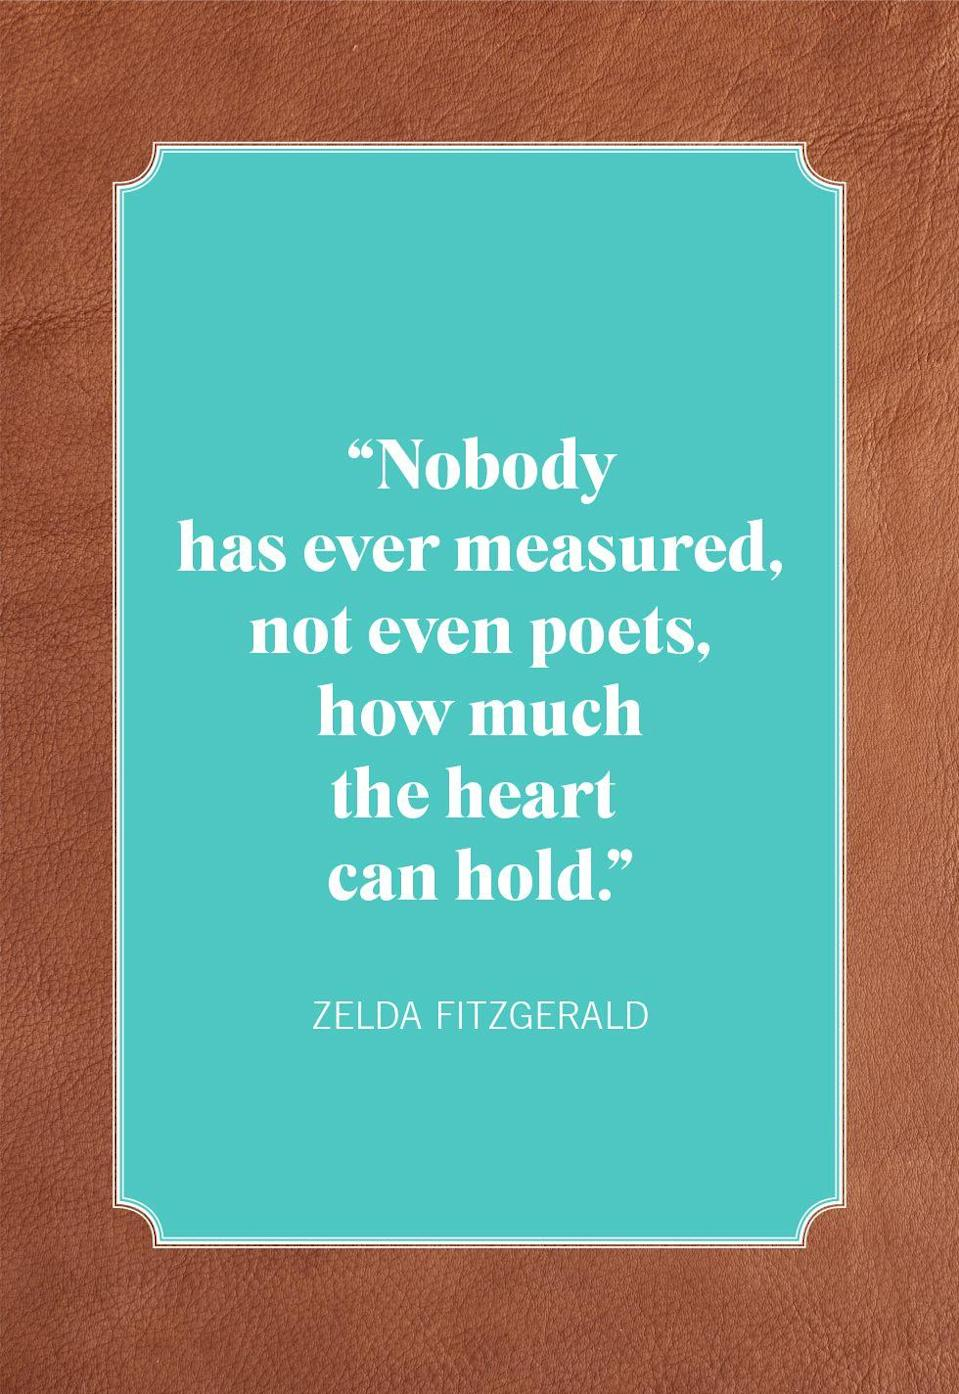 "<p>""Nobody has ever measured, not even poets, how much the heart can hold.""</p>"